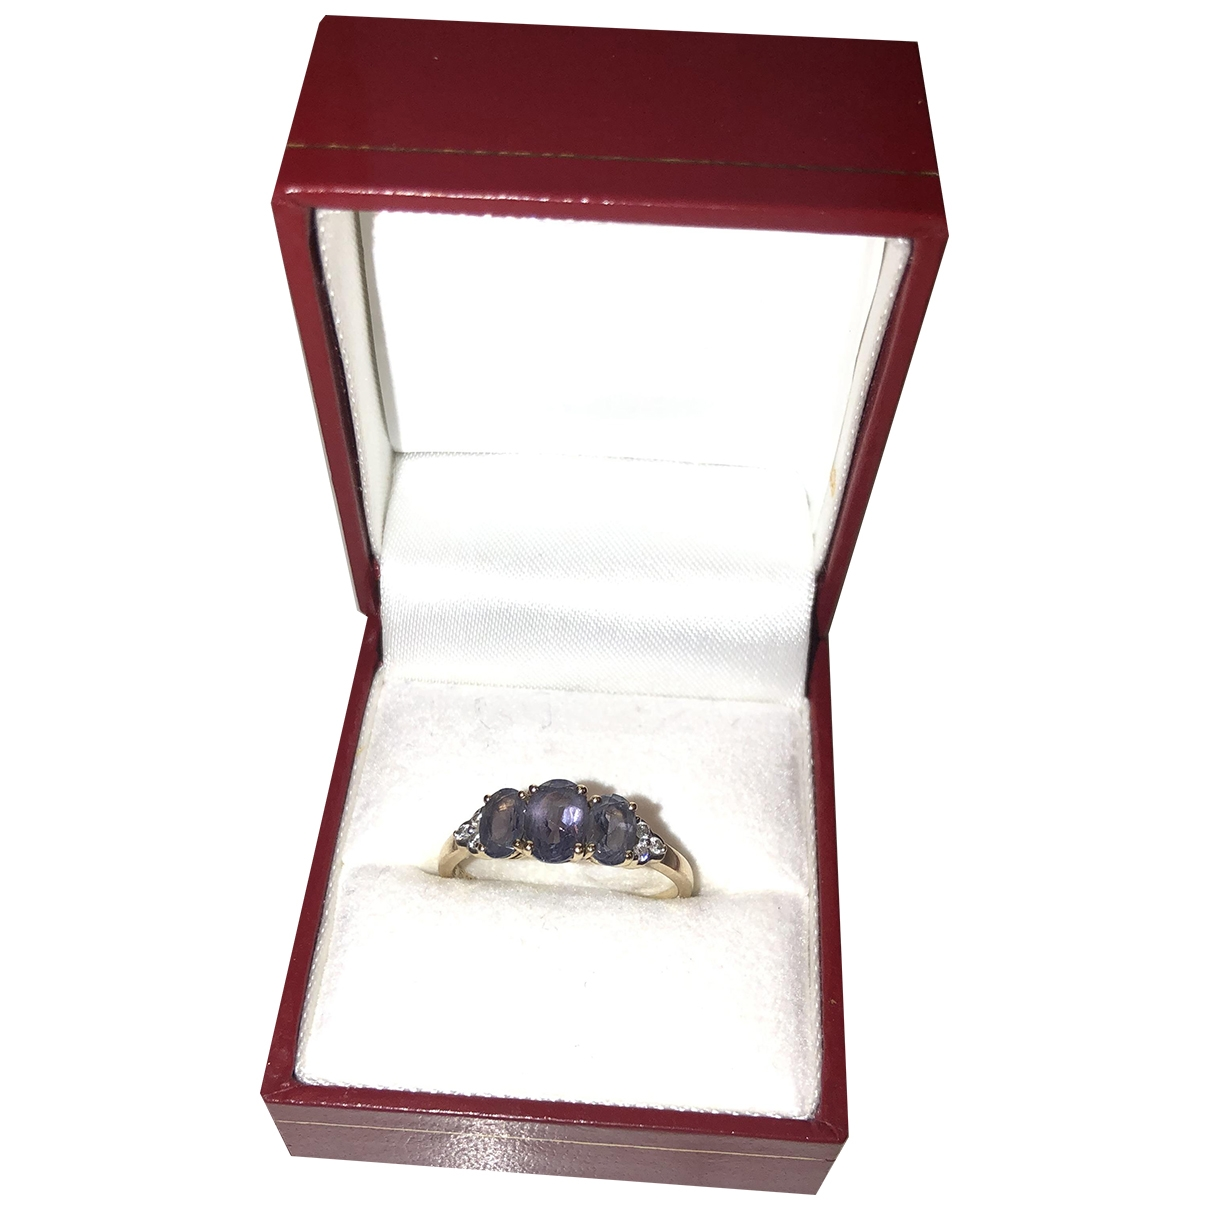 Non Signe / Unsigned Amethyste Ring in Gelbgold